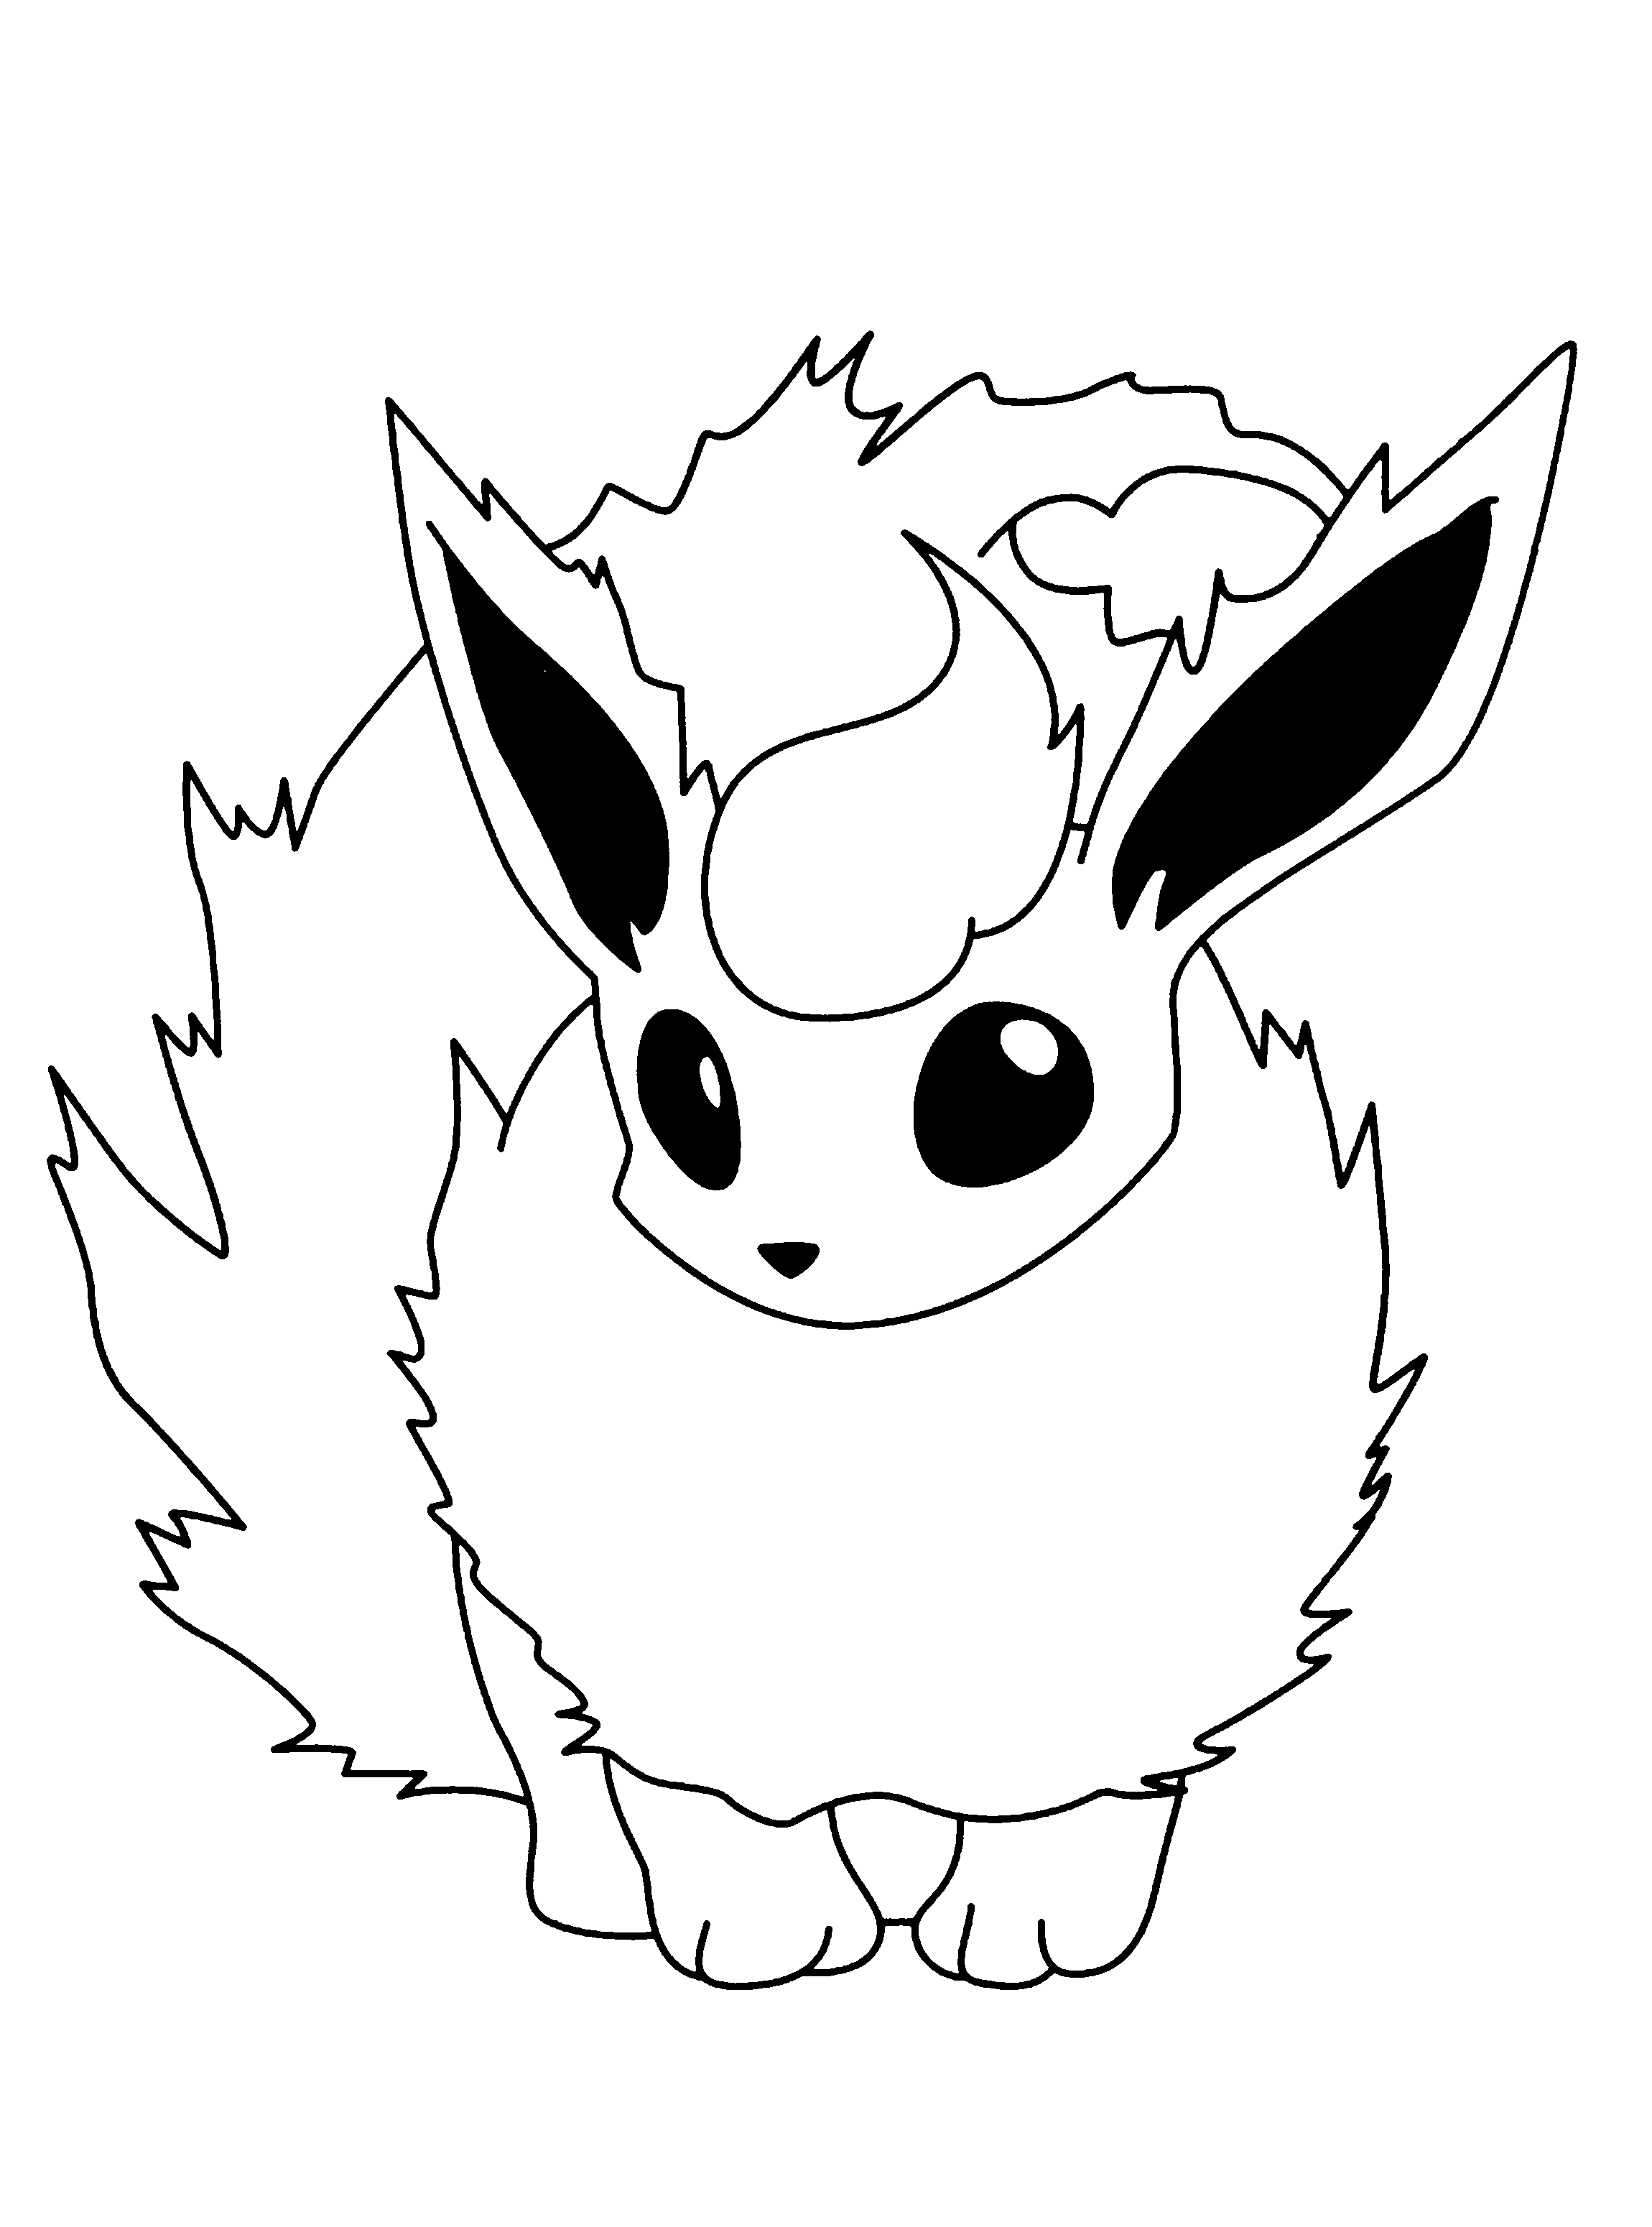 pokemon coloring pages for kids printable pokemon coloring pages coloring kids pokemon coloring pokemon pages printable kids for coloring